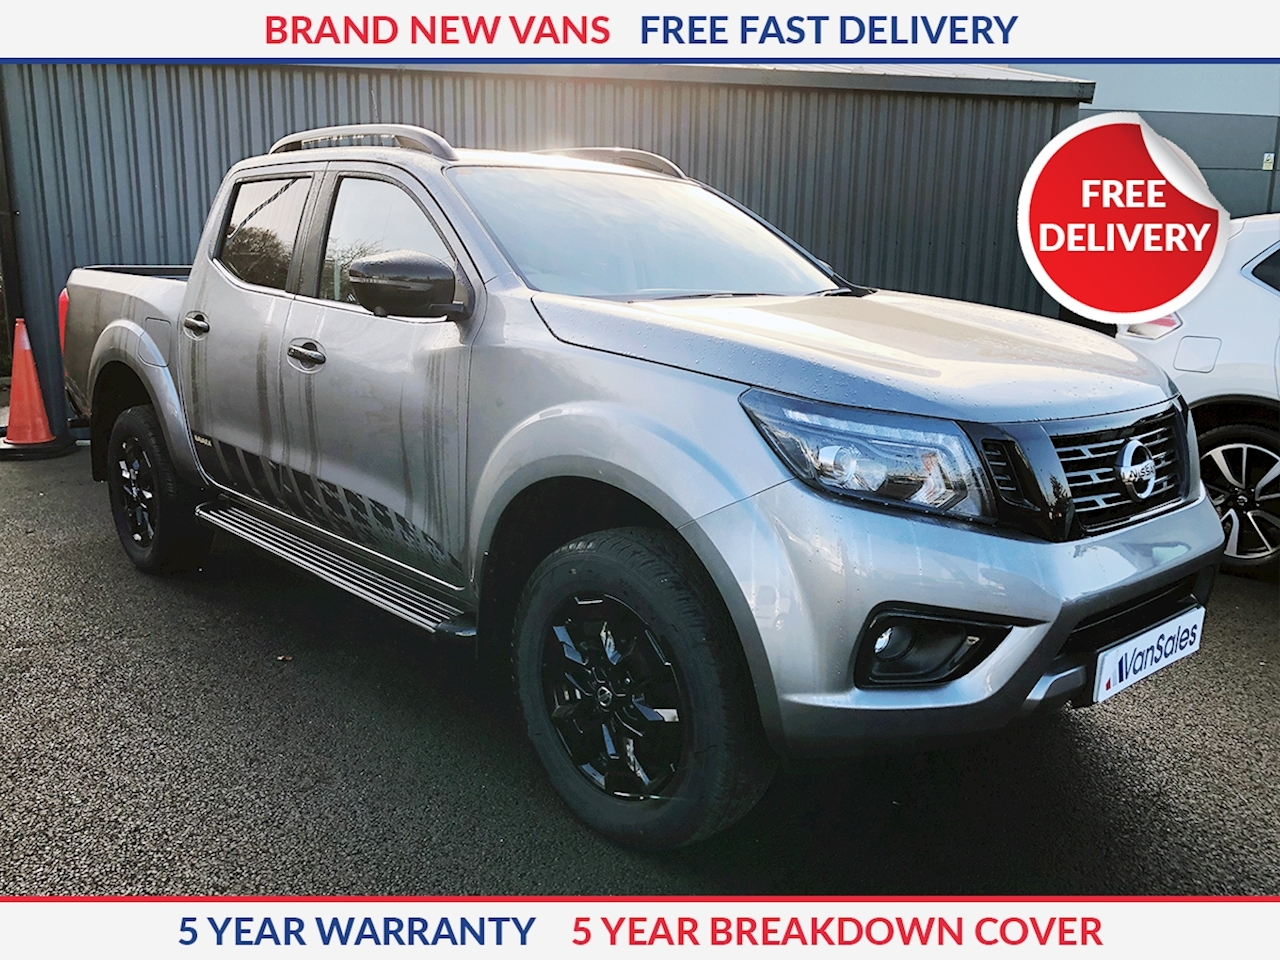 Nissan Navara MY19 Facelift N-Guard Double Cab 2.3 190PS Automatic